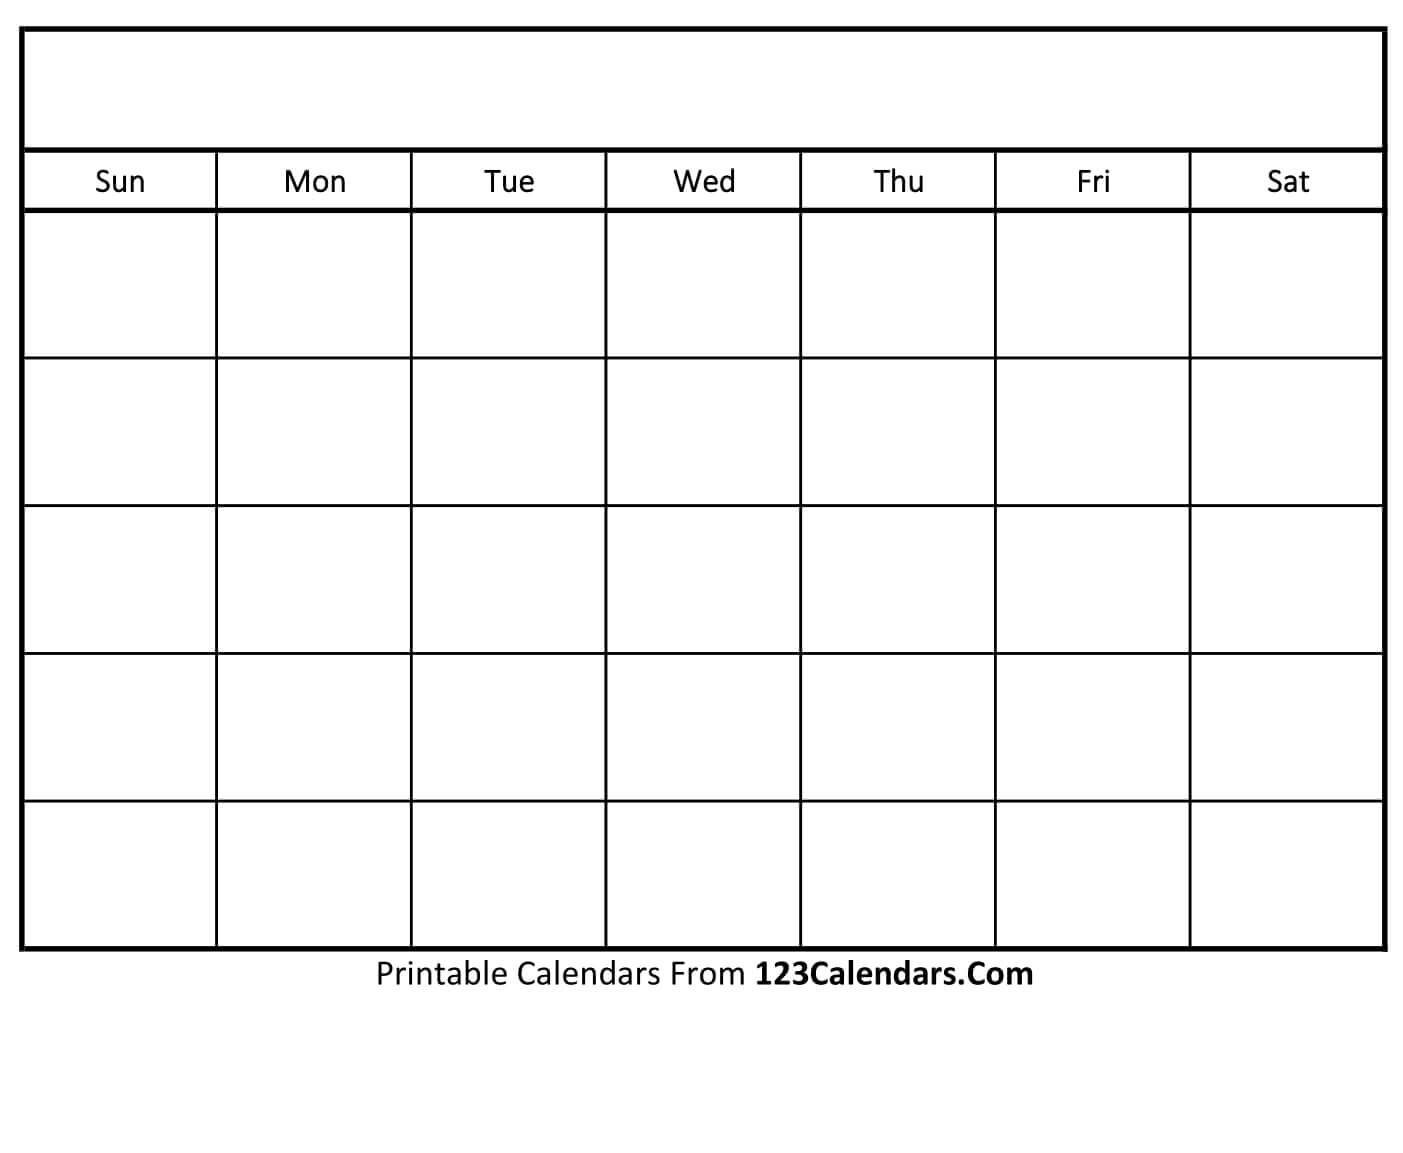 Free Printable Blank Calendar | 123Calendars throughout Blank Monthly Calendar To Print